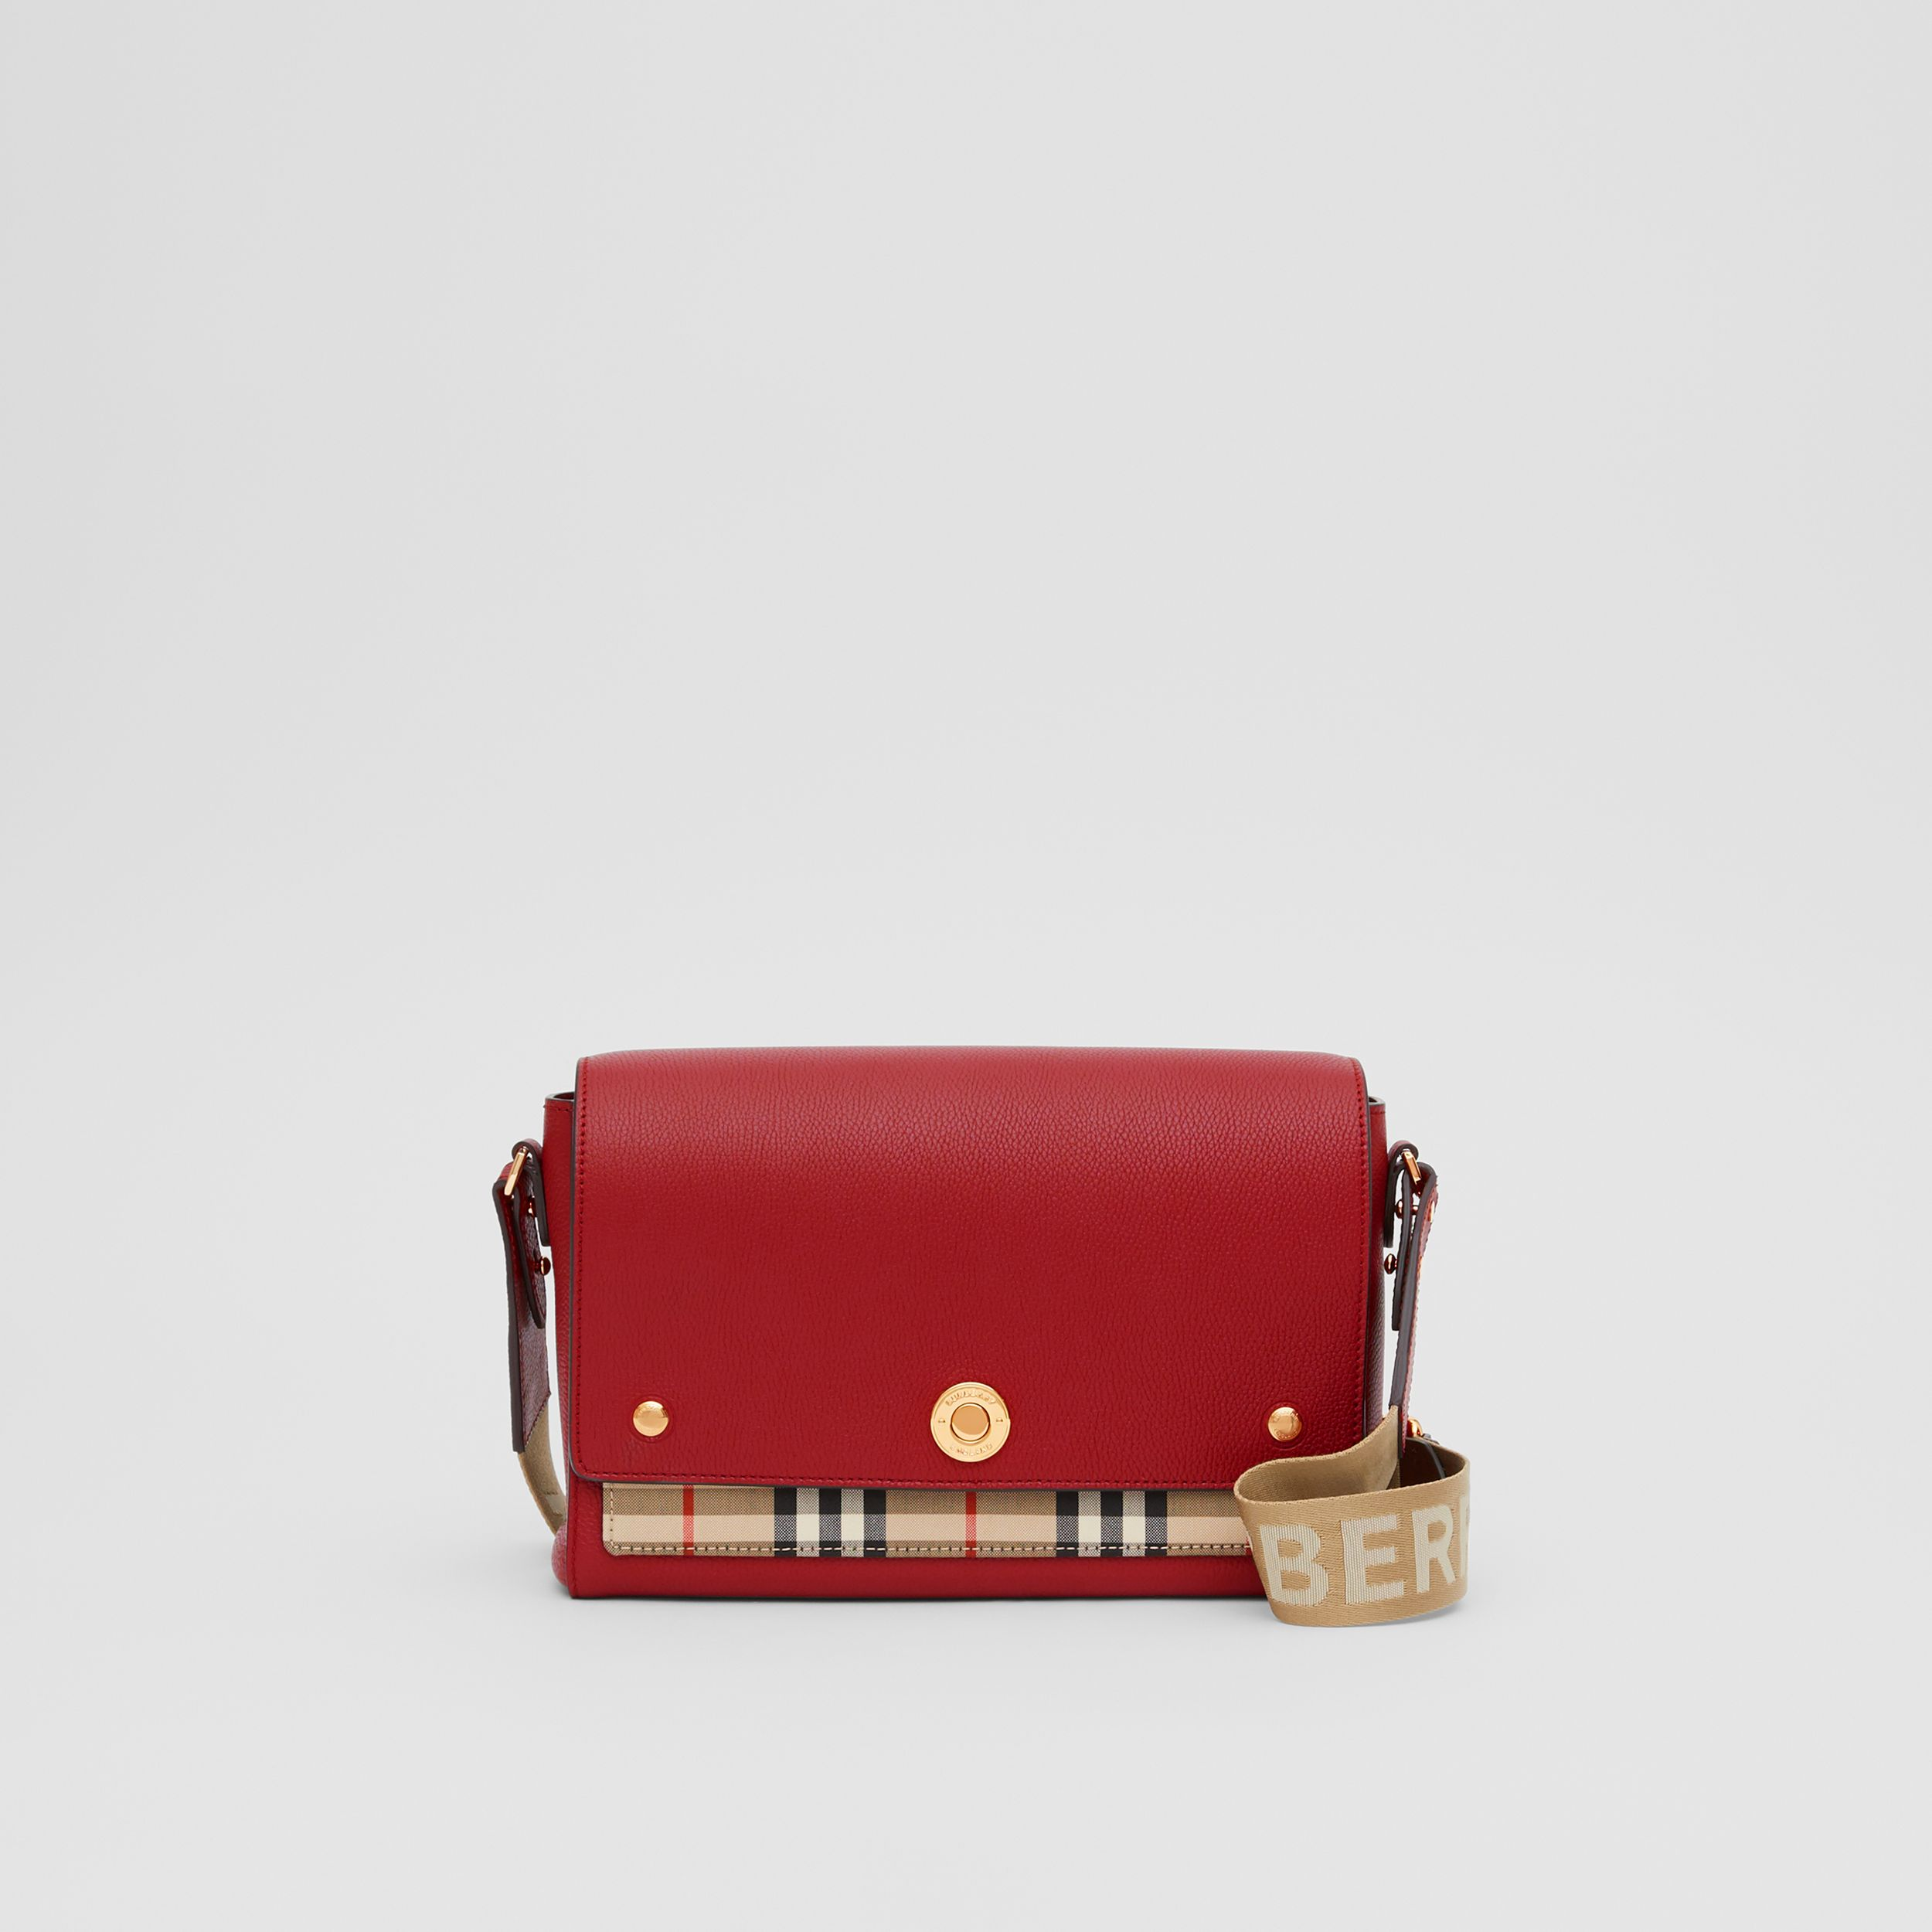 Leather and Vintage Check Note Crossbody Bag in Dark Carmine - Women | Burberry - 1